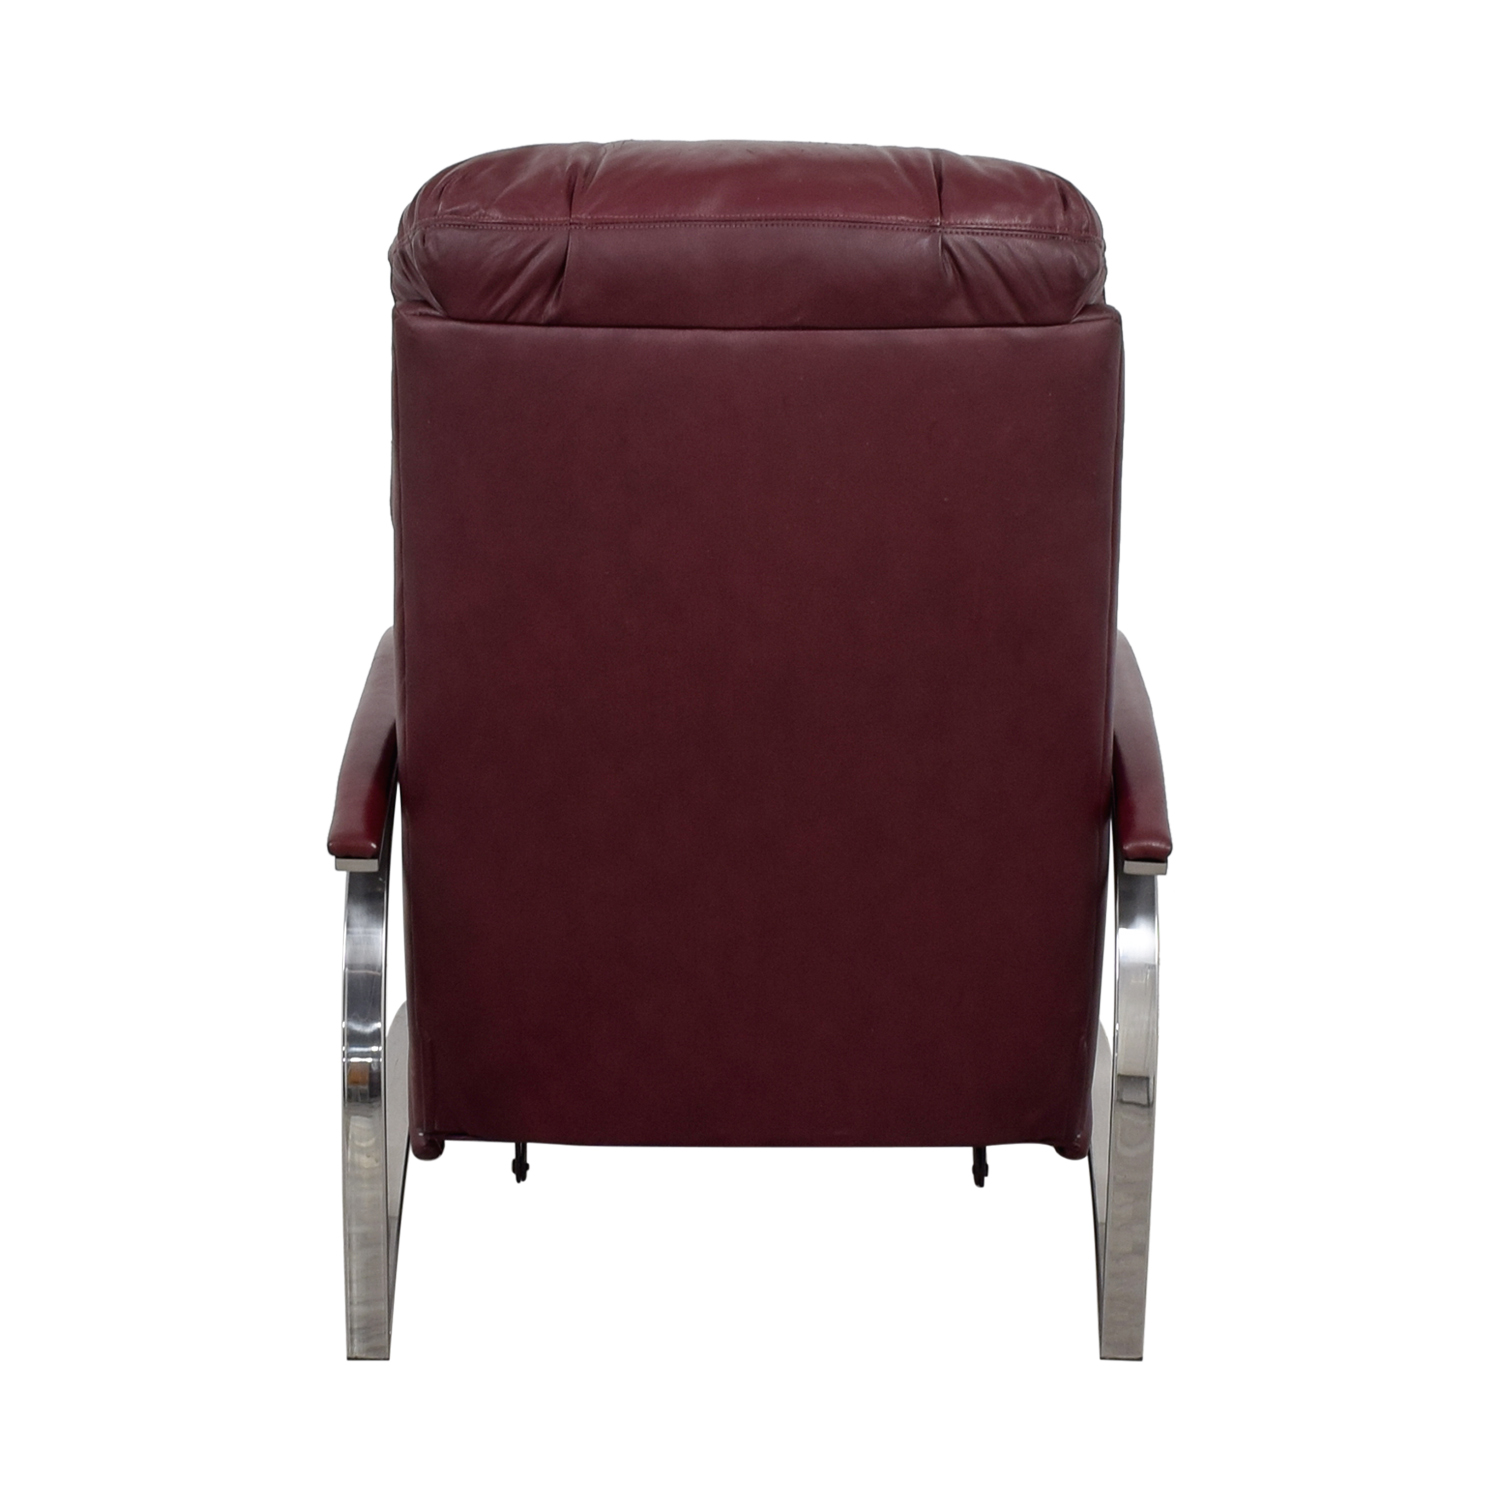 Burgundy Leather Recliner Chair price